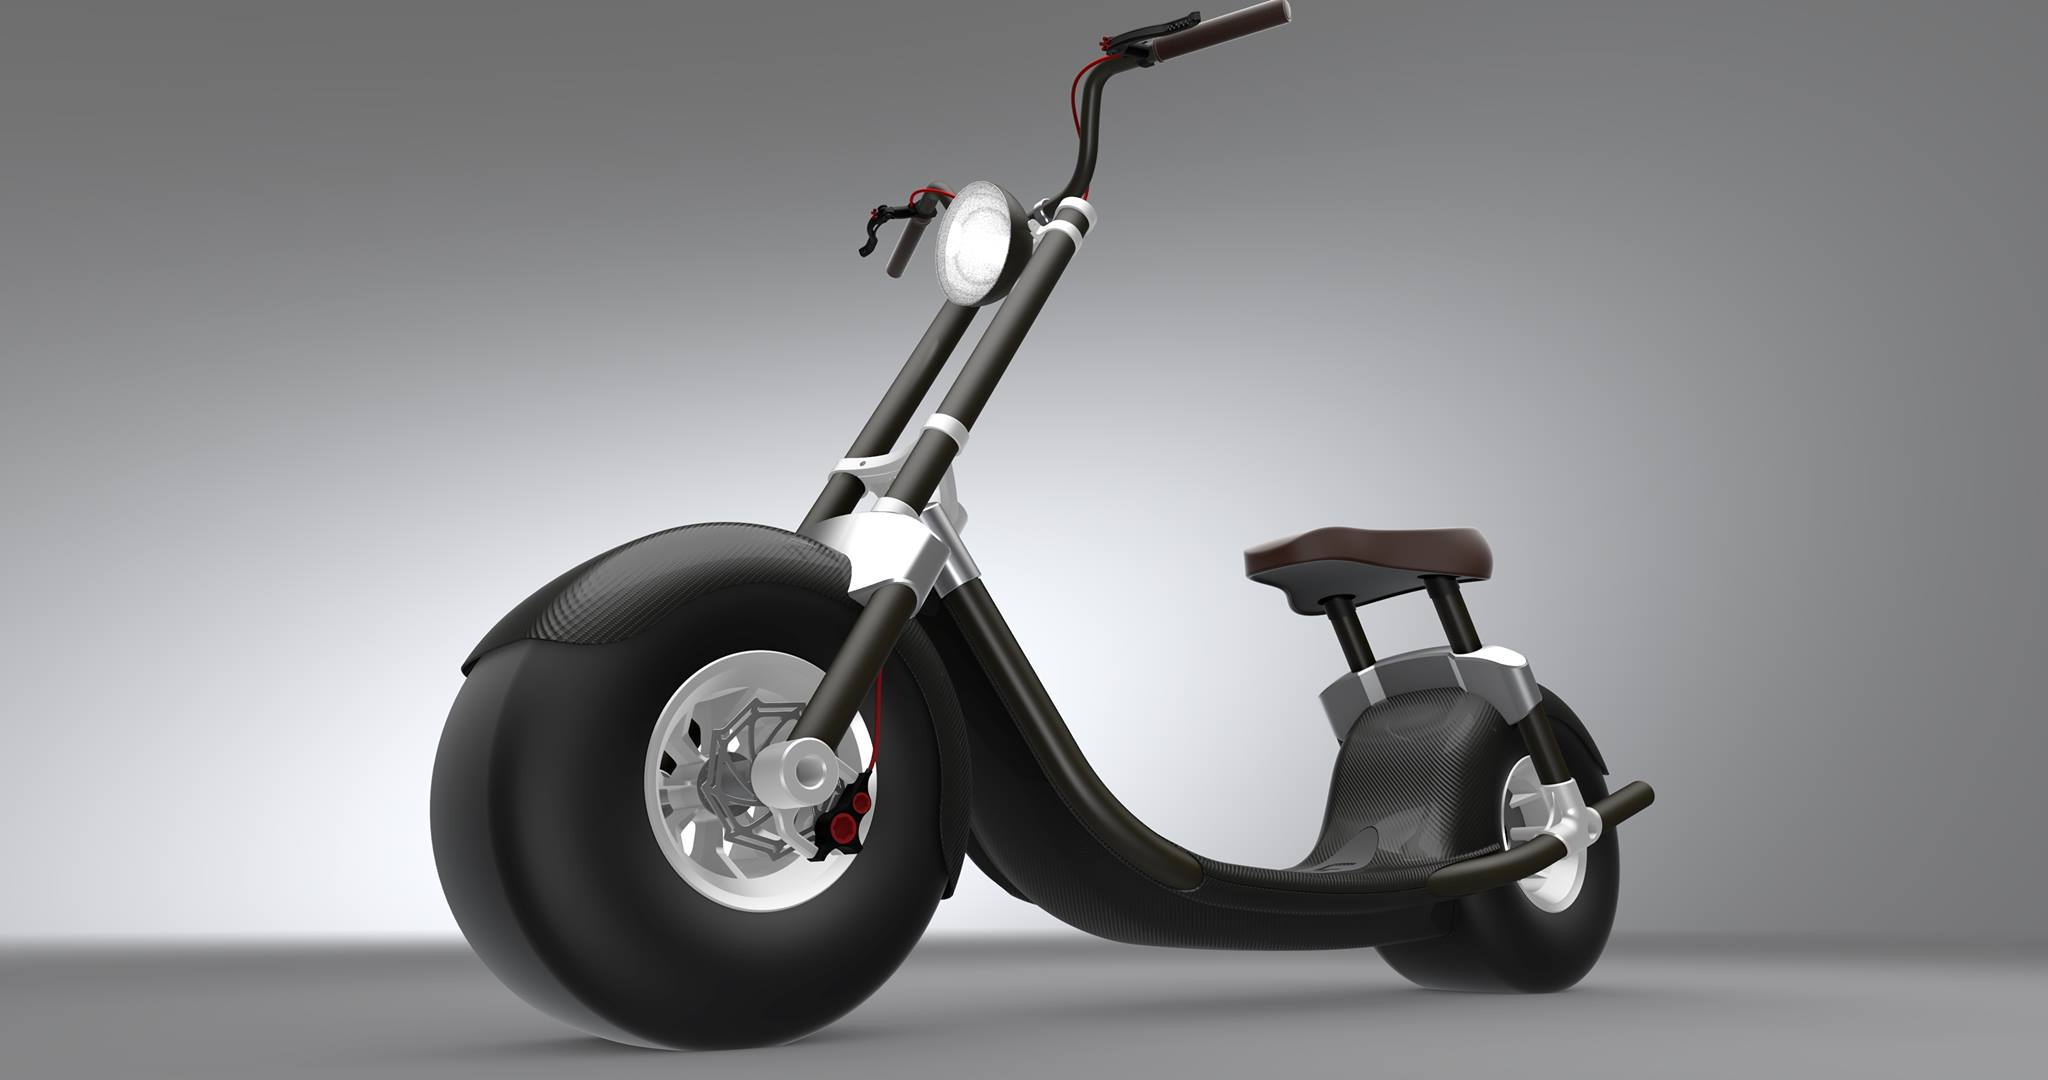 Wallpaper American Muscle Car Meet Scooterson The World S First Smart Electric Kick